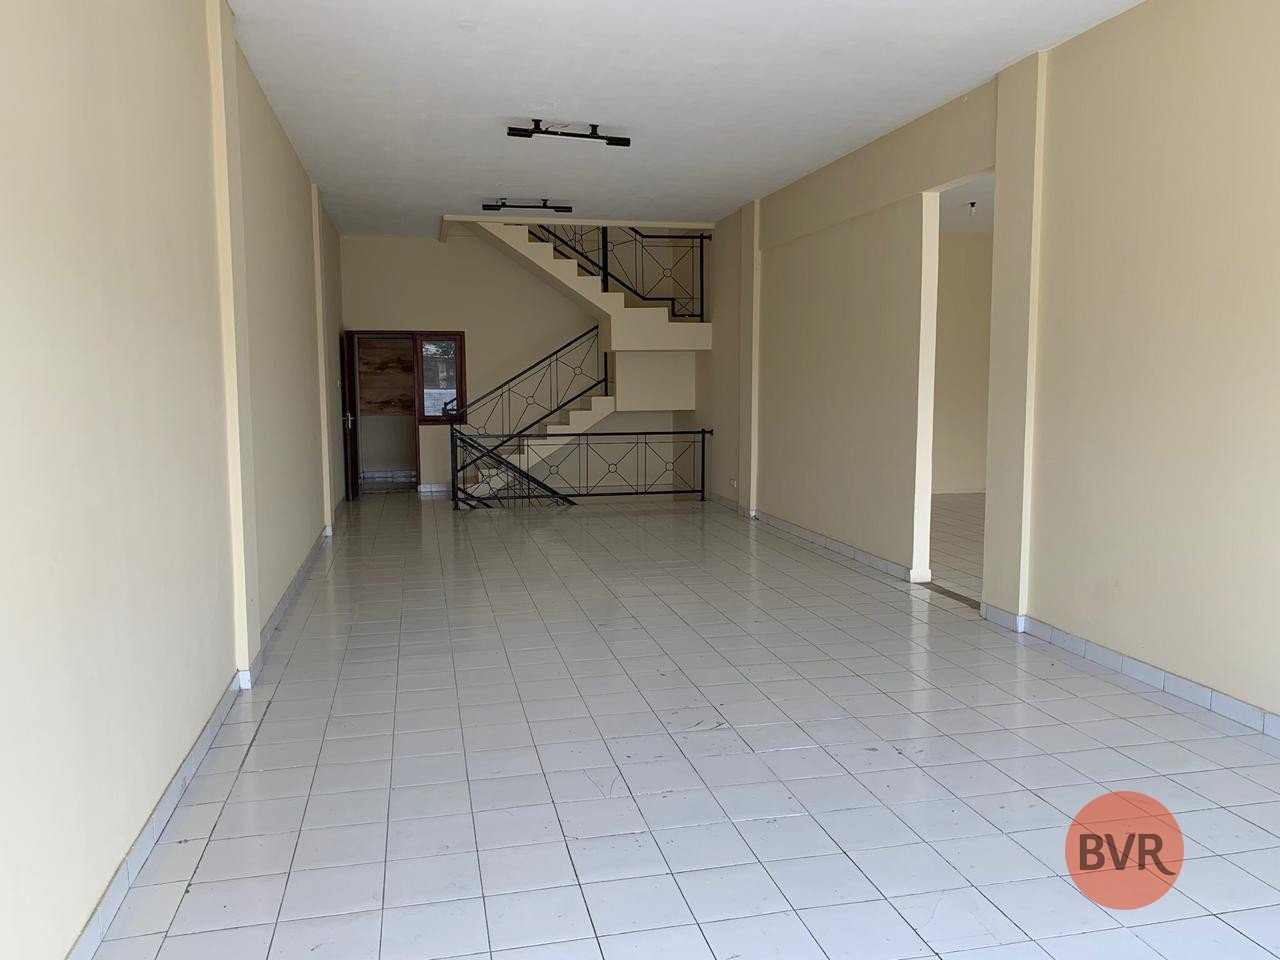 Bali Property Shop For Rent in Main Roadside of Sunset Road